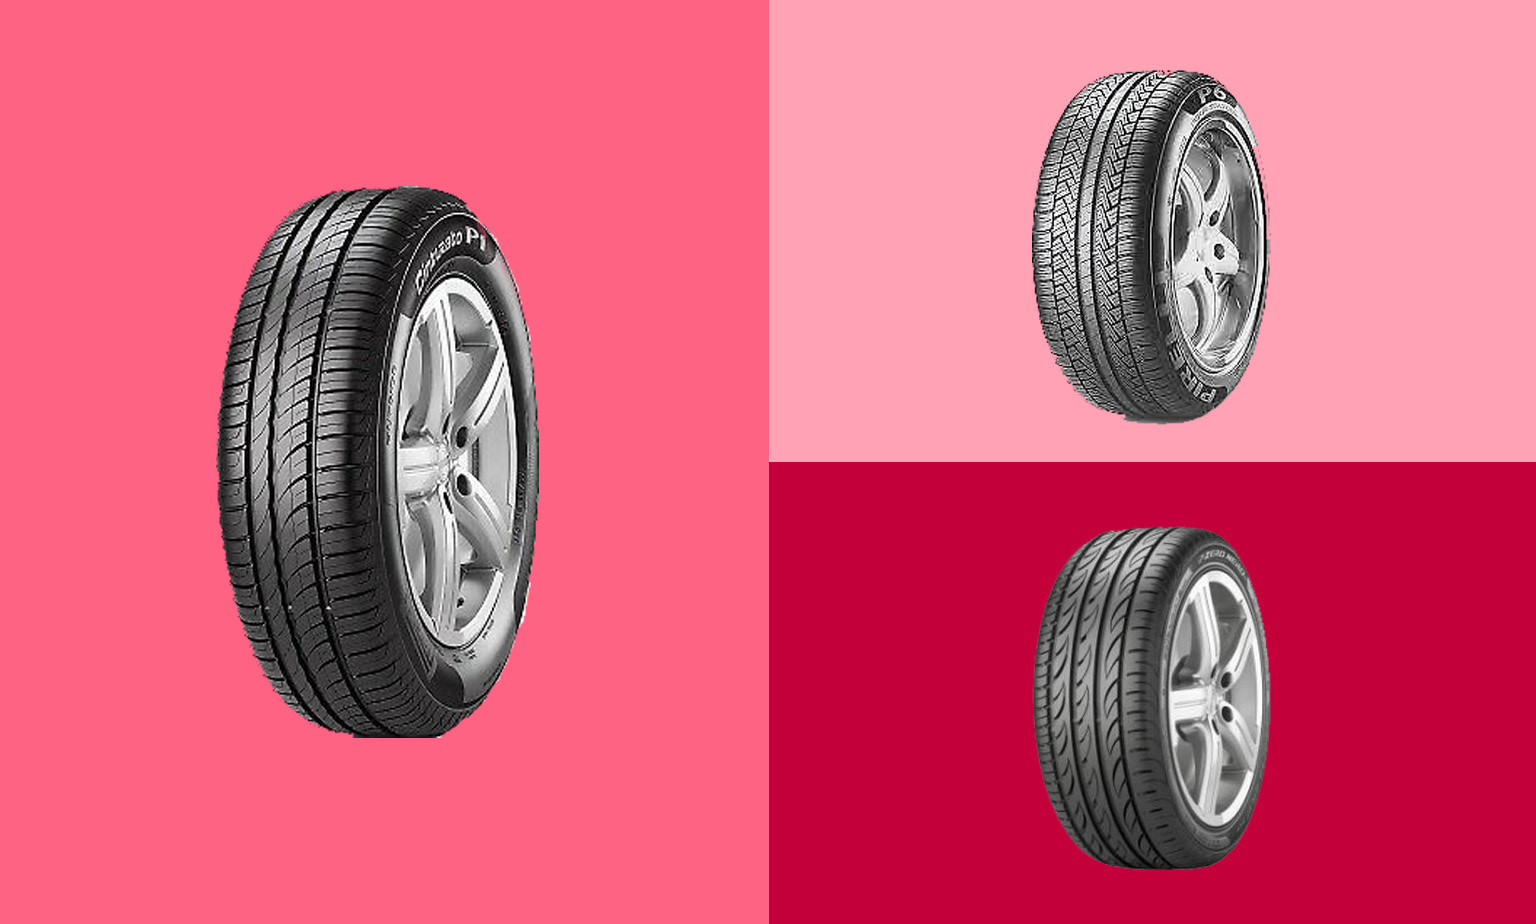 Up to 10% Off Pirelli Tyres